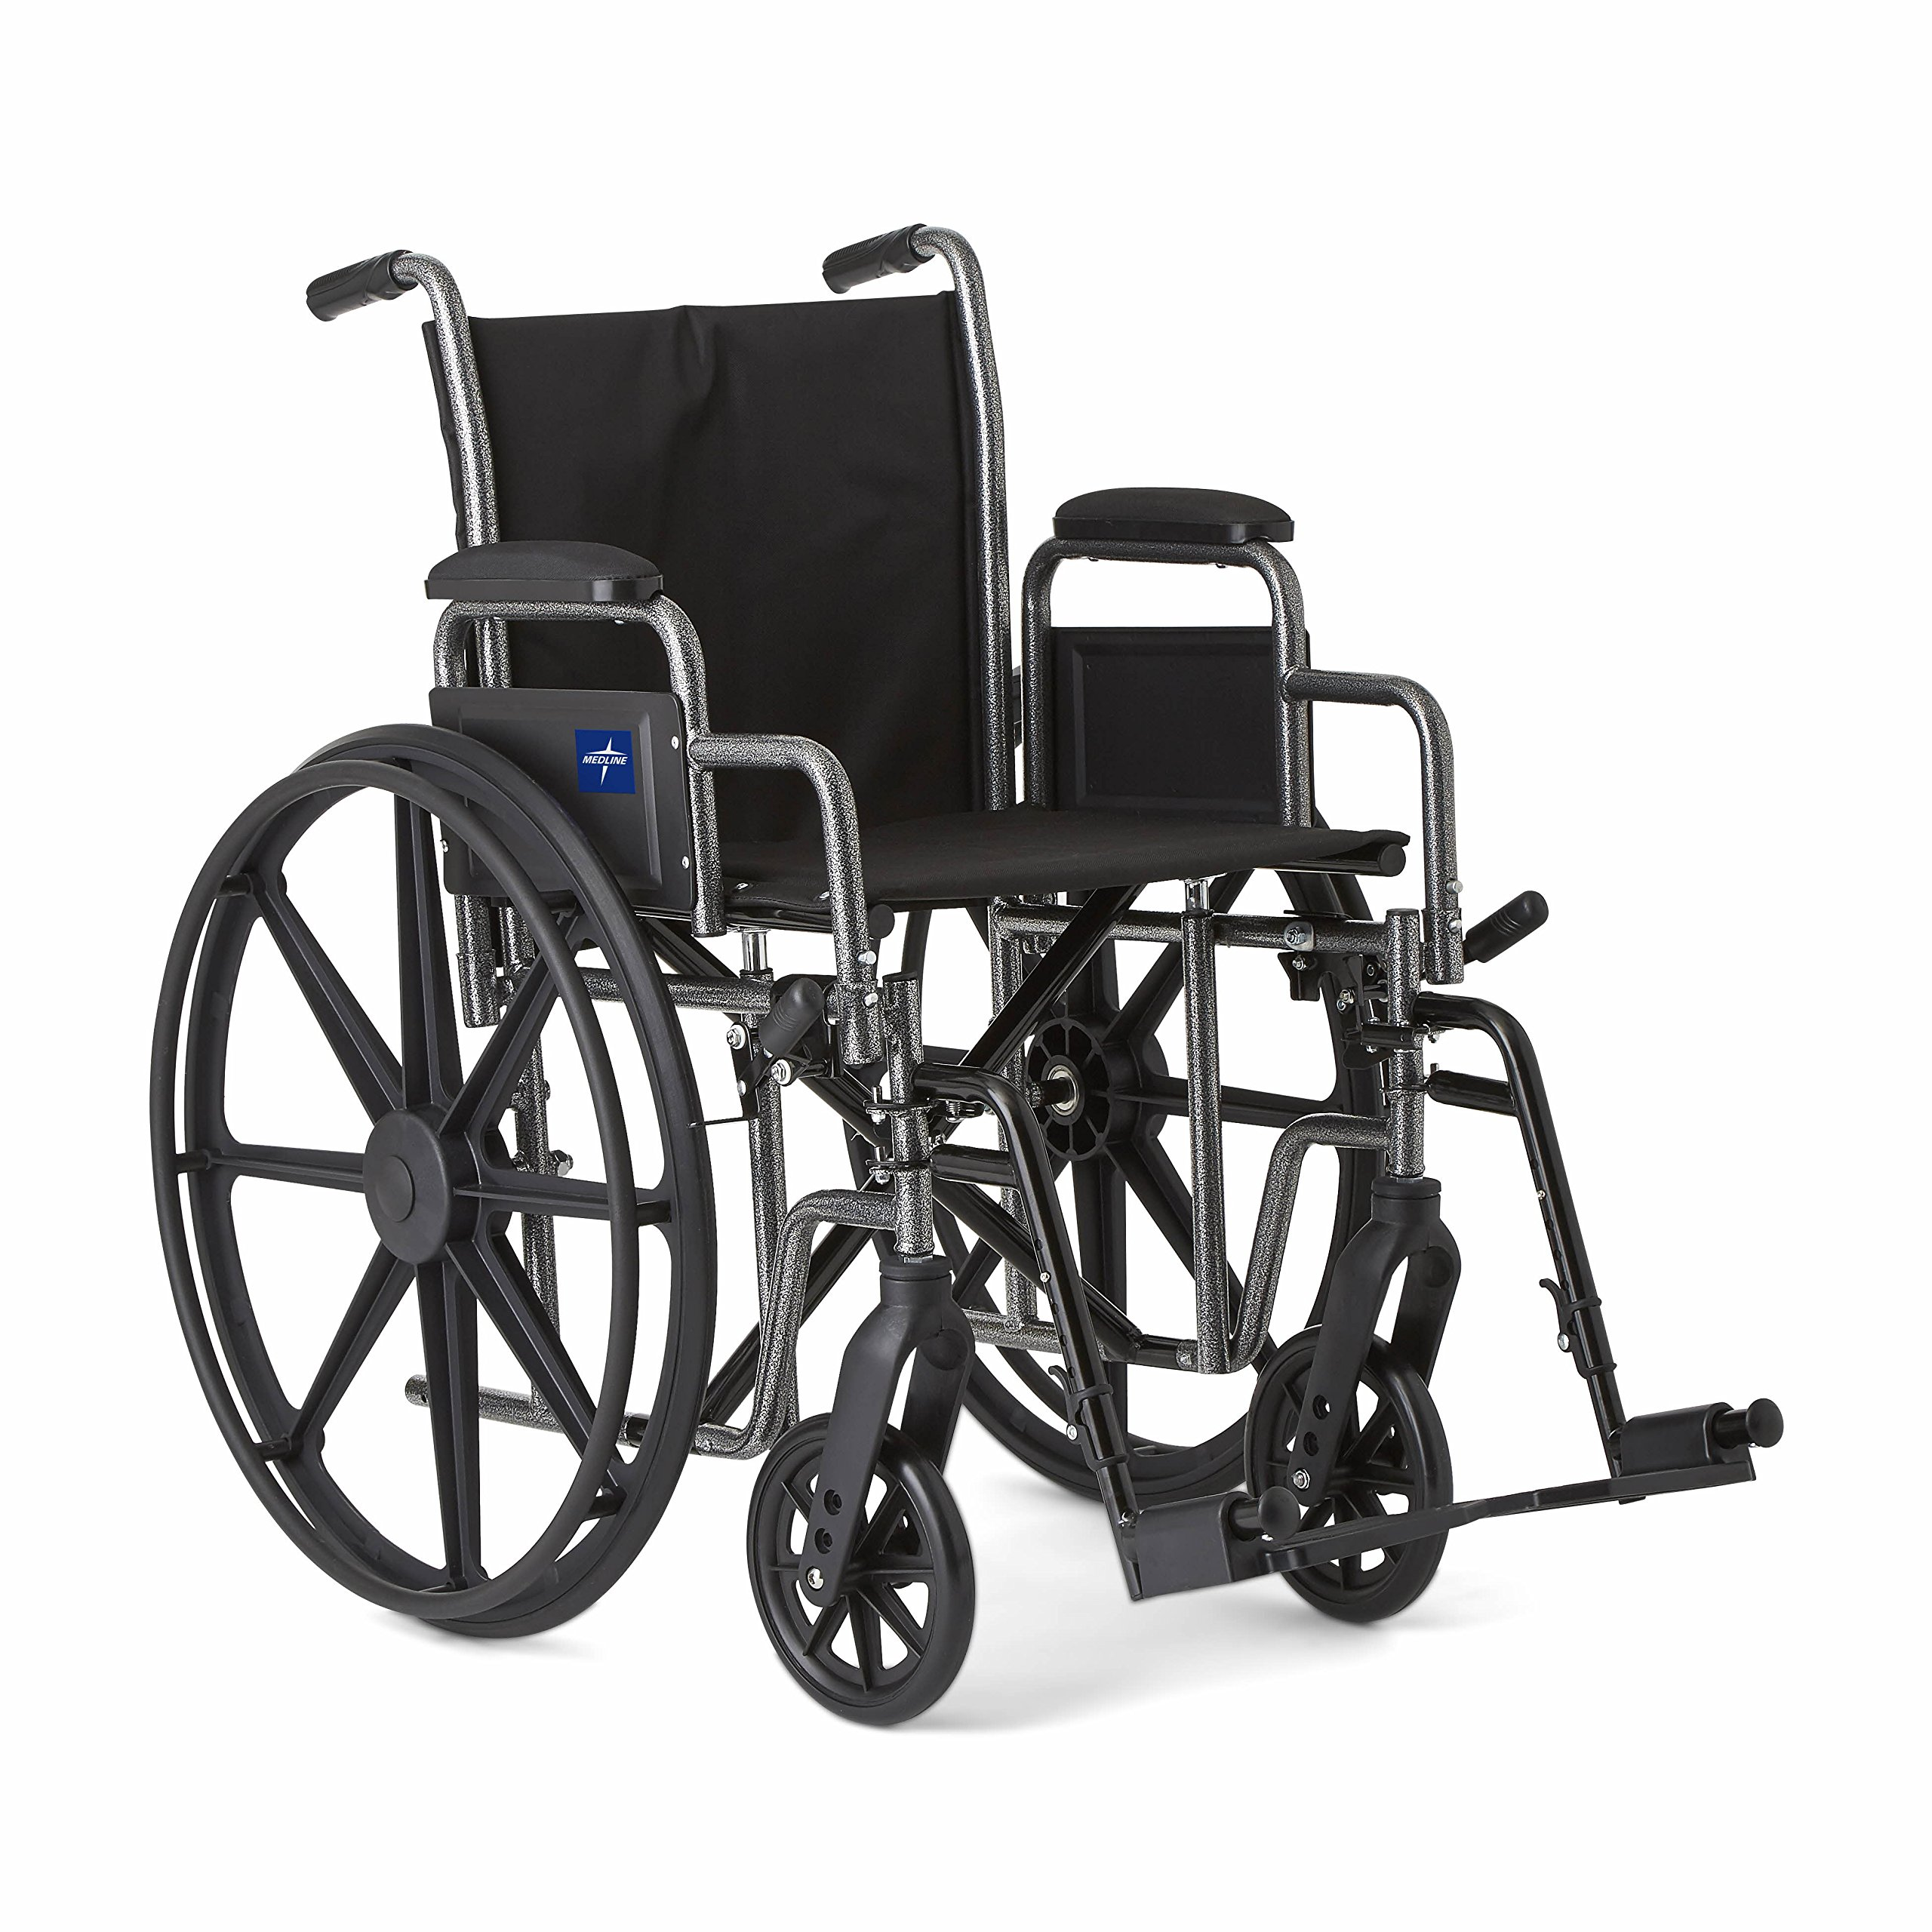 """Medline Strong and Sturdy Wheelchair with Desk-Length Arms and Swing-Away Leg Rests for Easy Transfers, 18"""" Seat"""